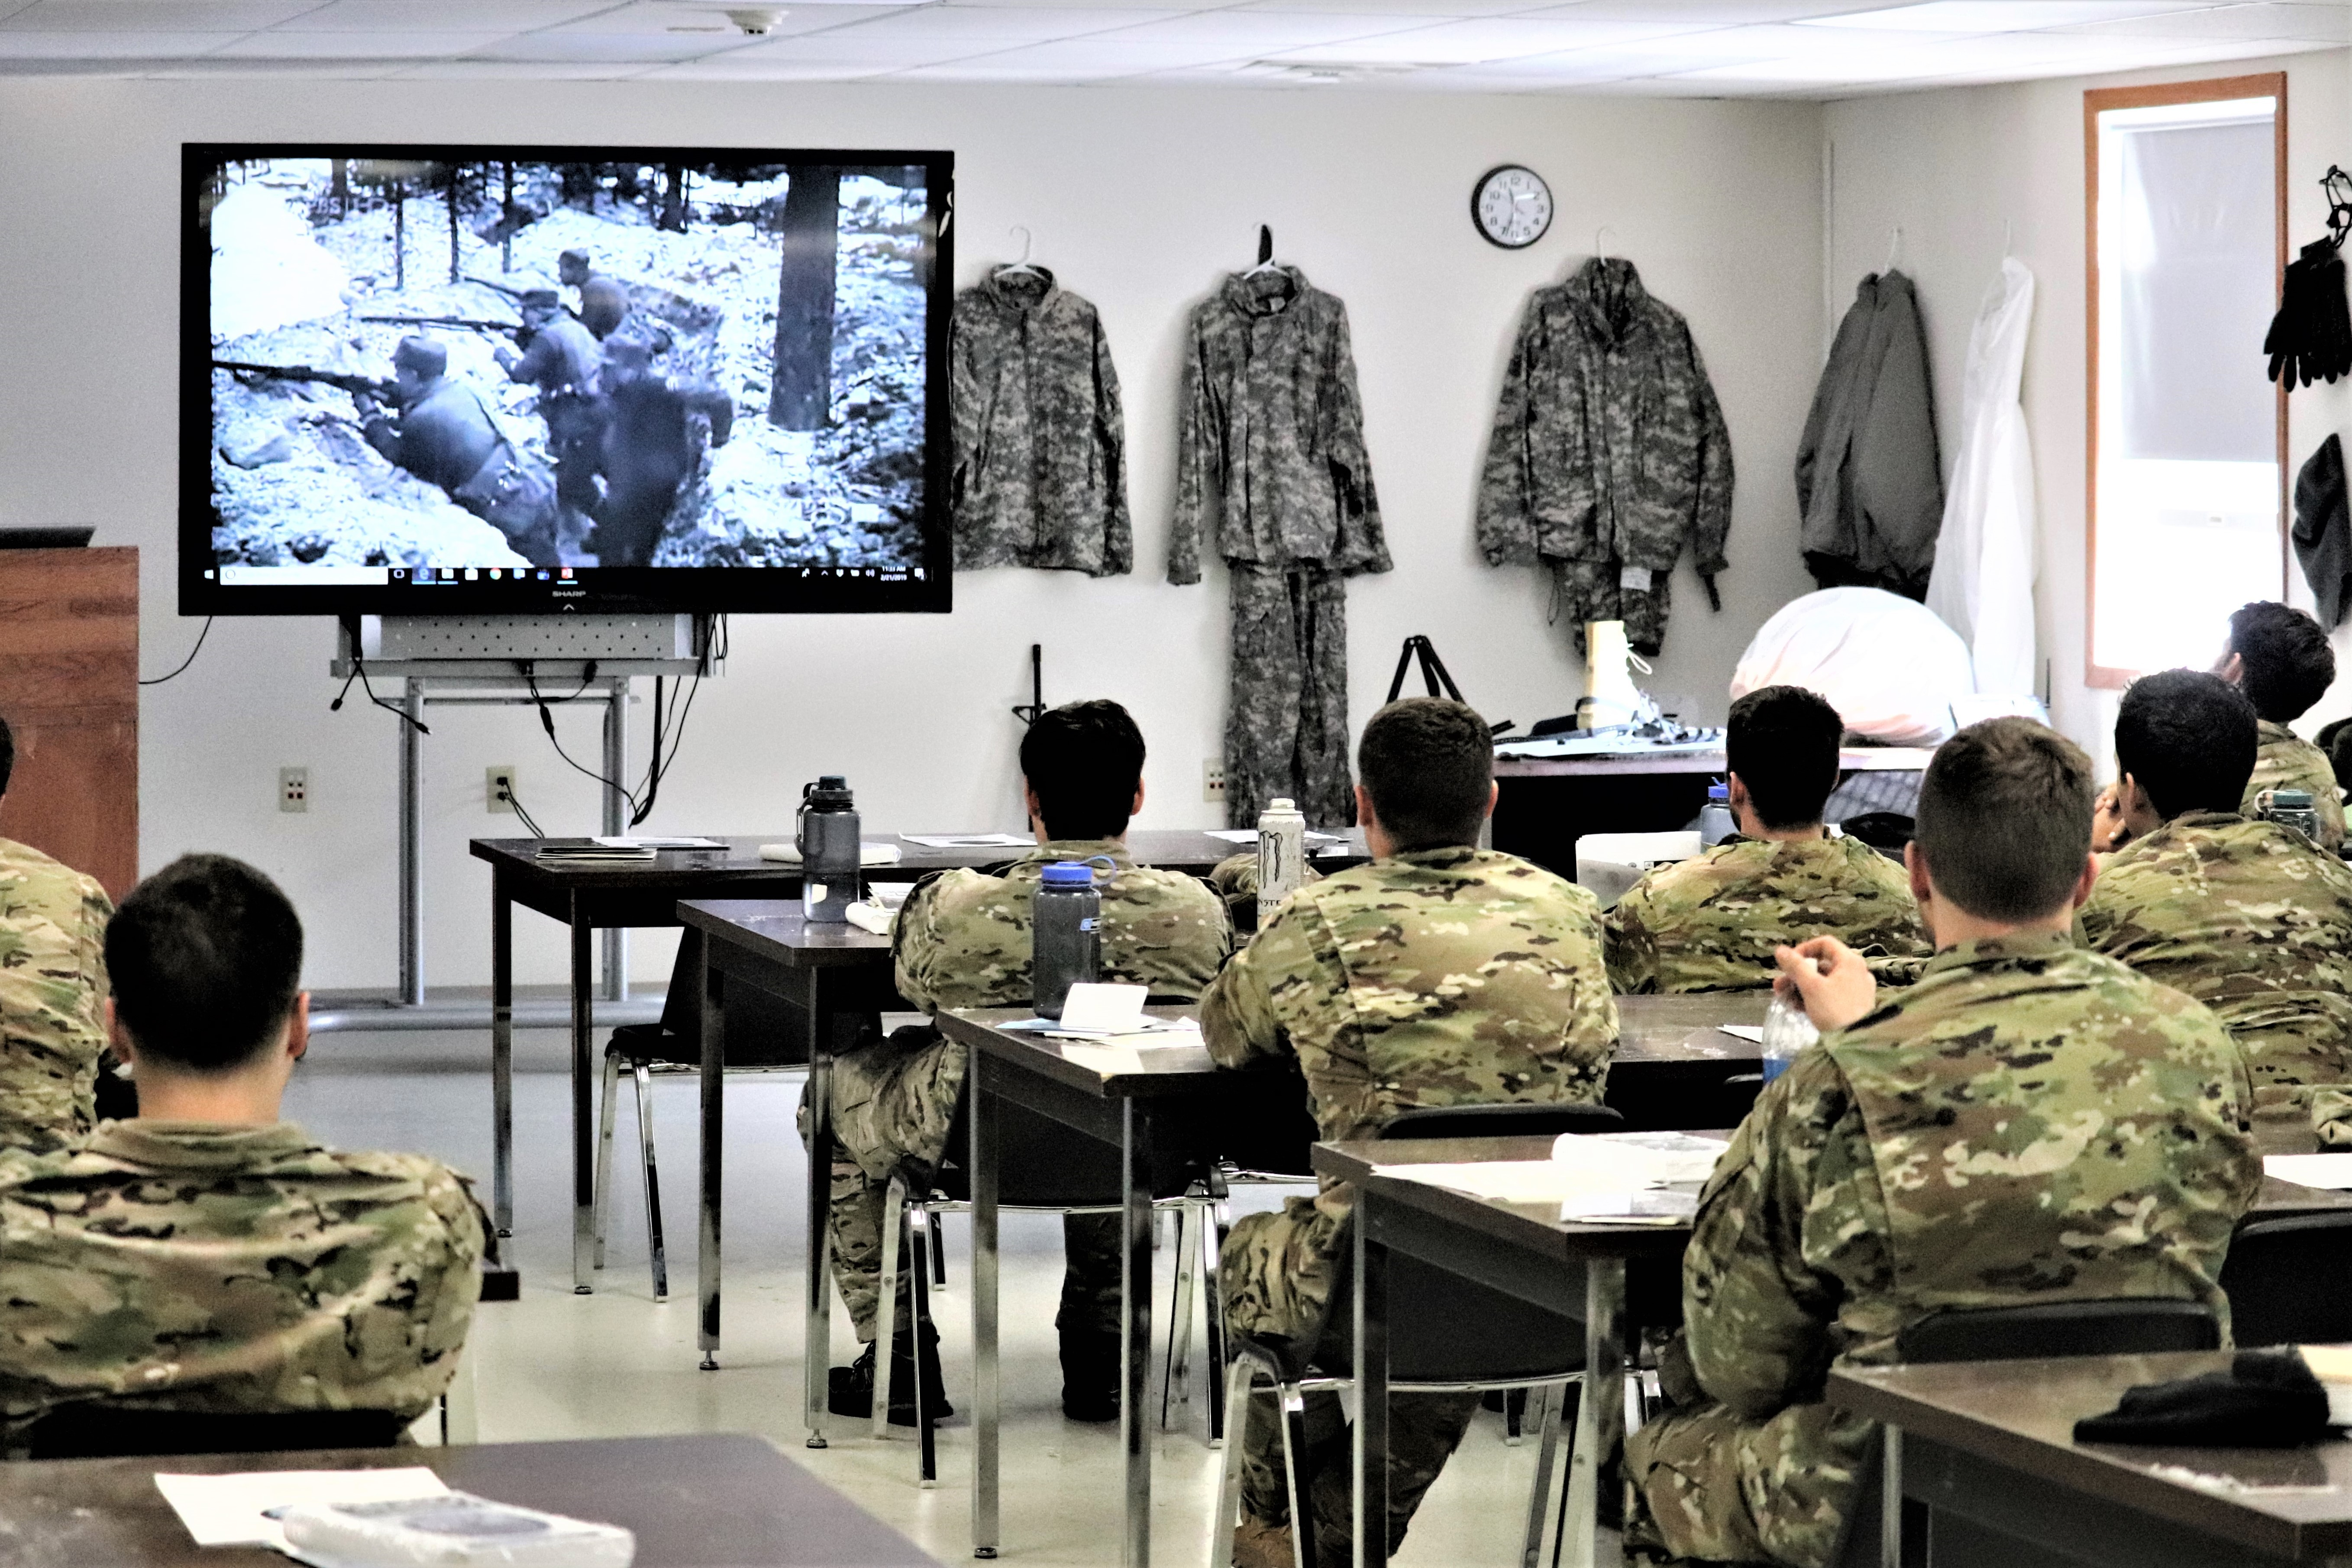 Soldiers watch a training video during classroom training in February 2019 at Fort McCoy in Wisconsin. (Scott T. Sturkol/Army)